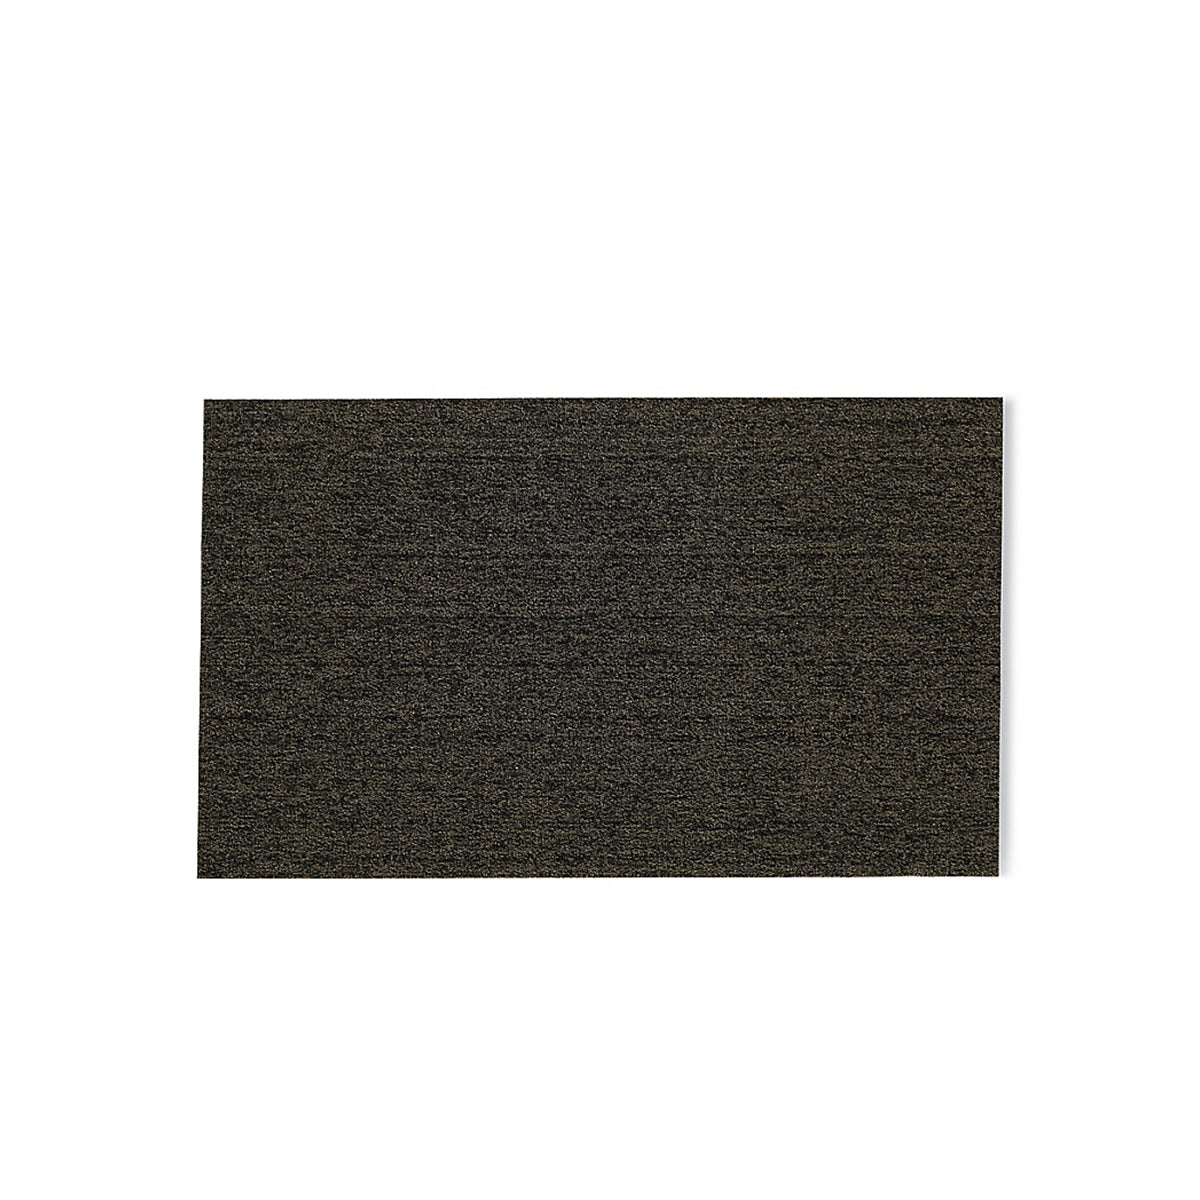 Heathered Shag Doormat Grey 46x71cm